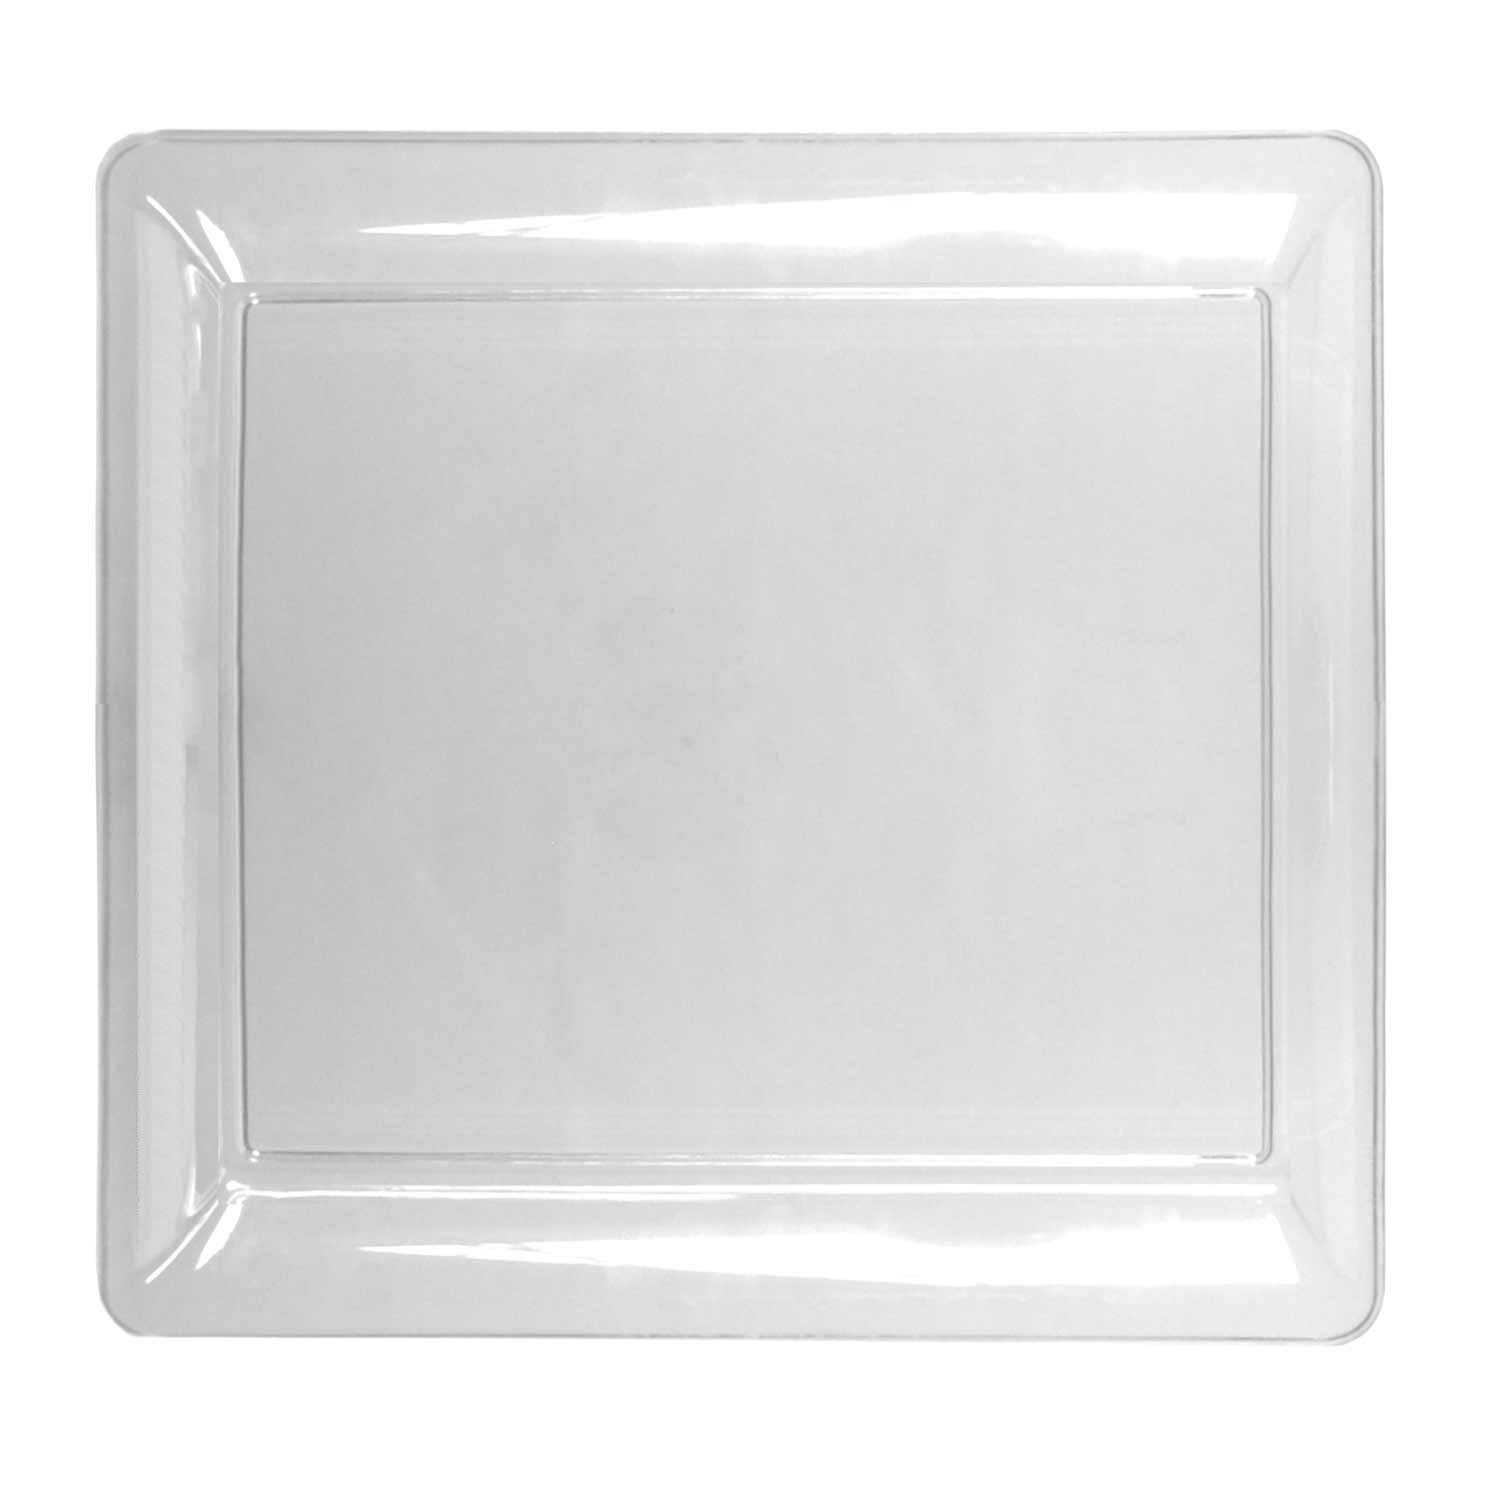 Party Essentials Heavy Duty Plastic Square Tray, 16'' Length x 16'' Width, Clear (Case of 6)